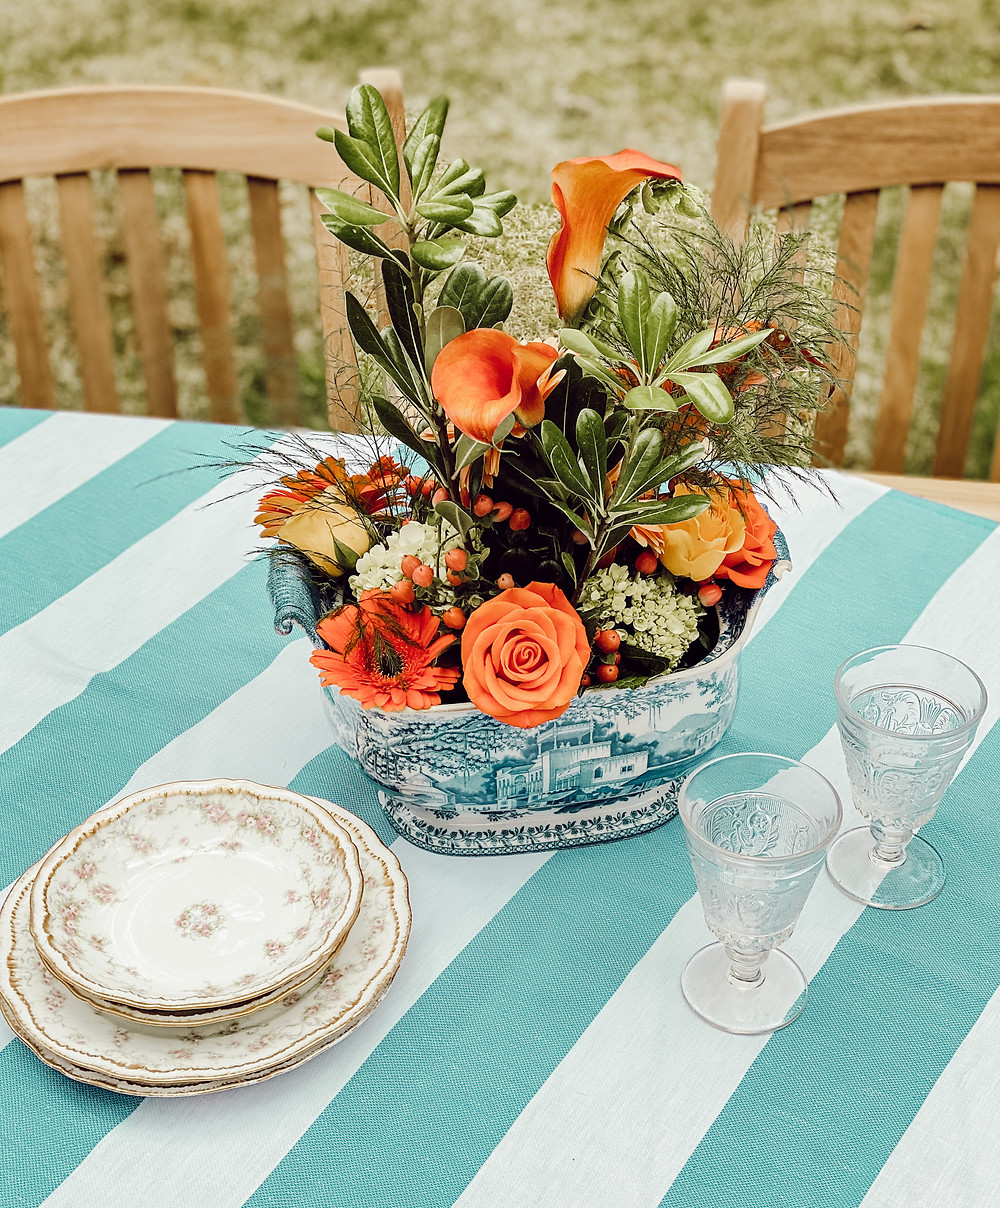 Backyard Table and Centerpiece